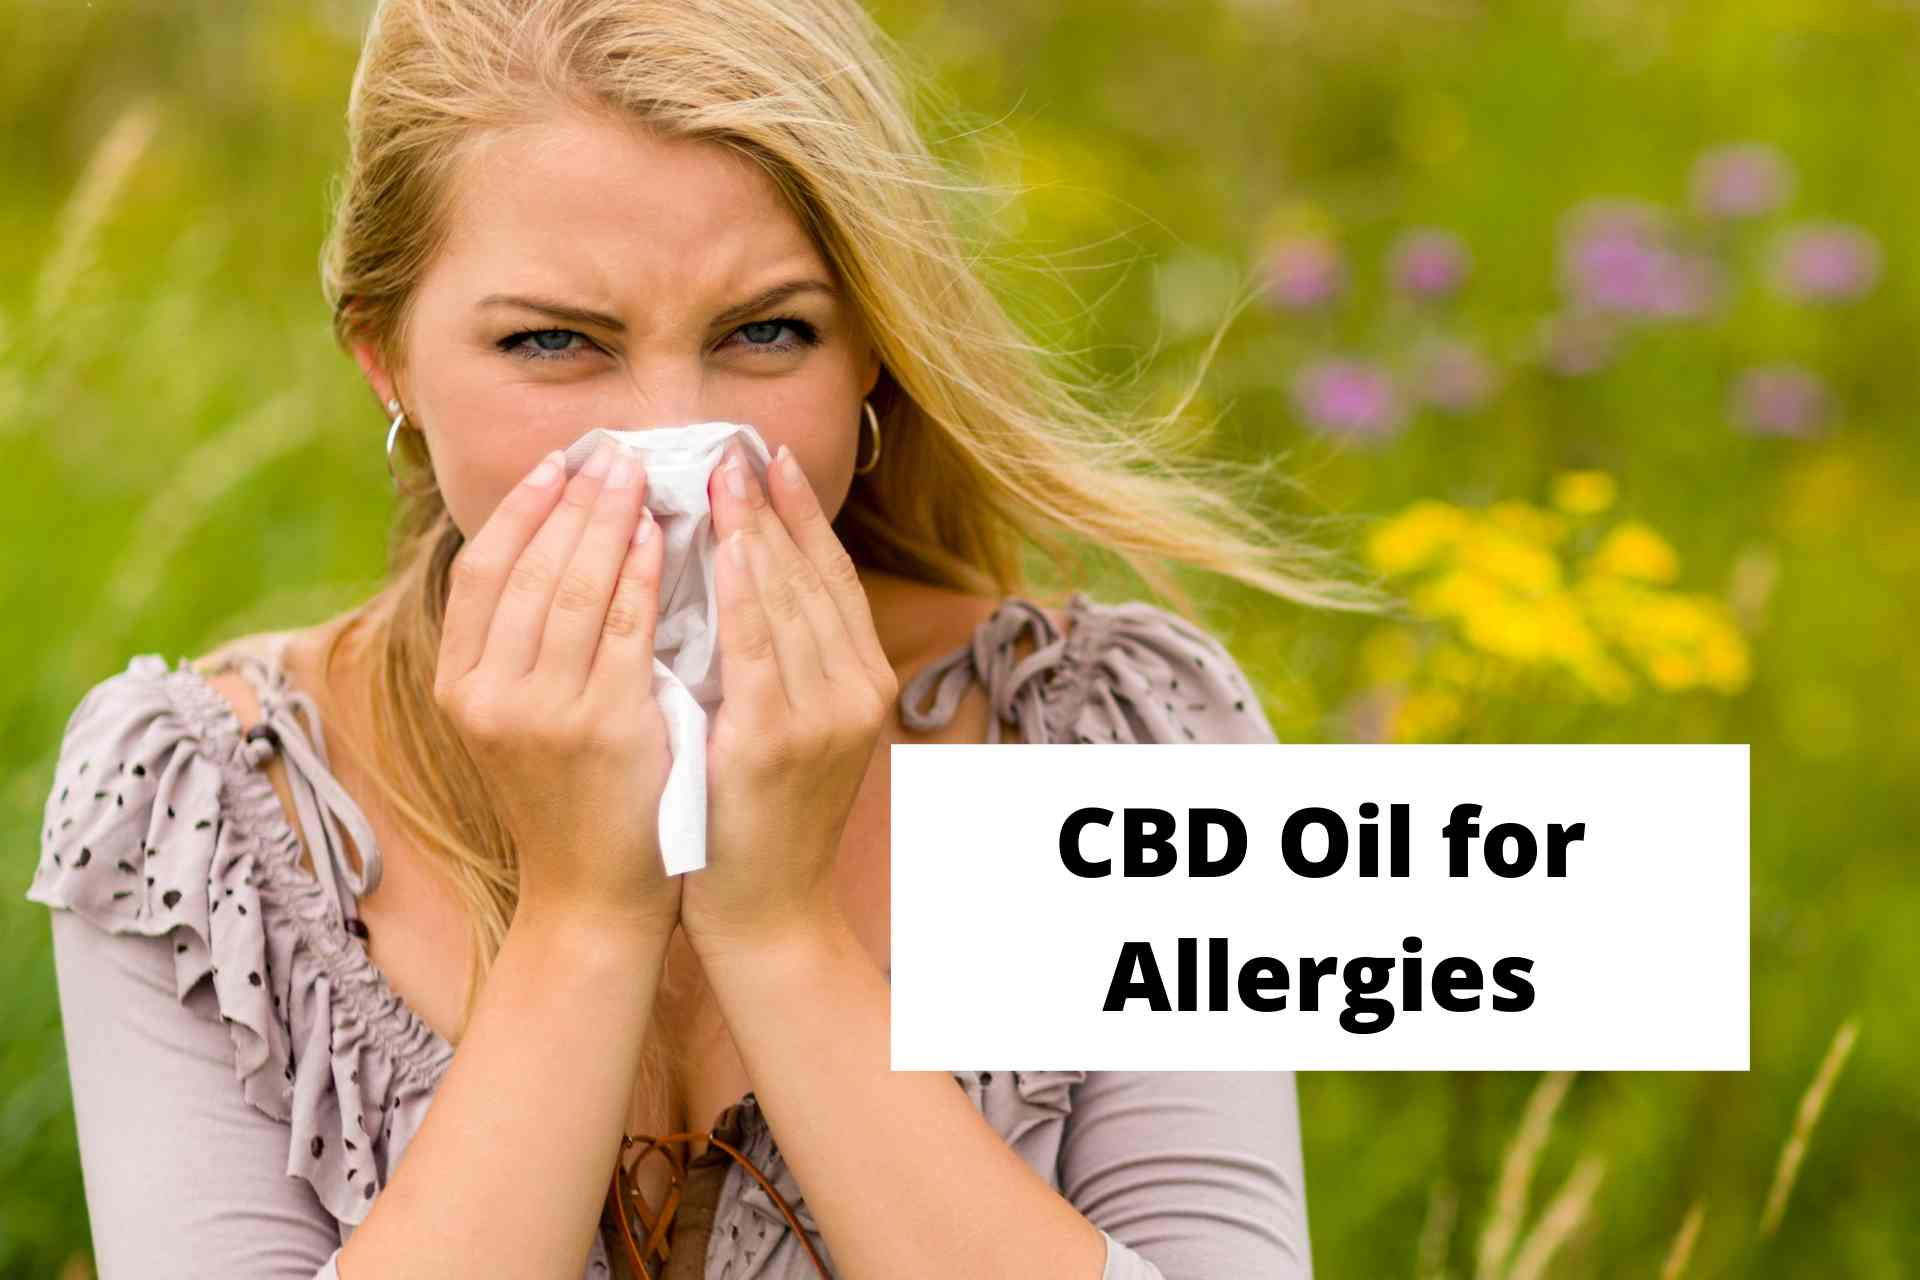 CBD Oil for Allergies